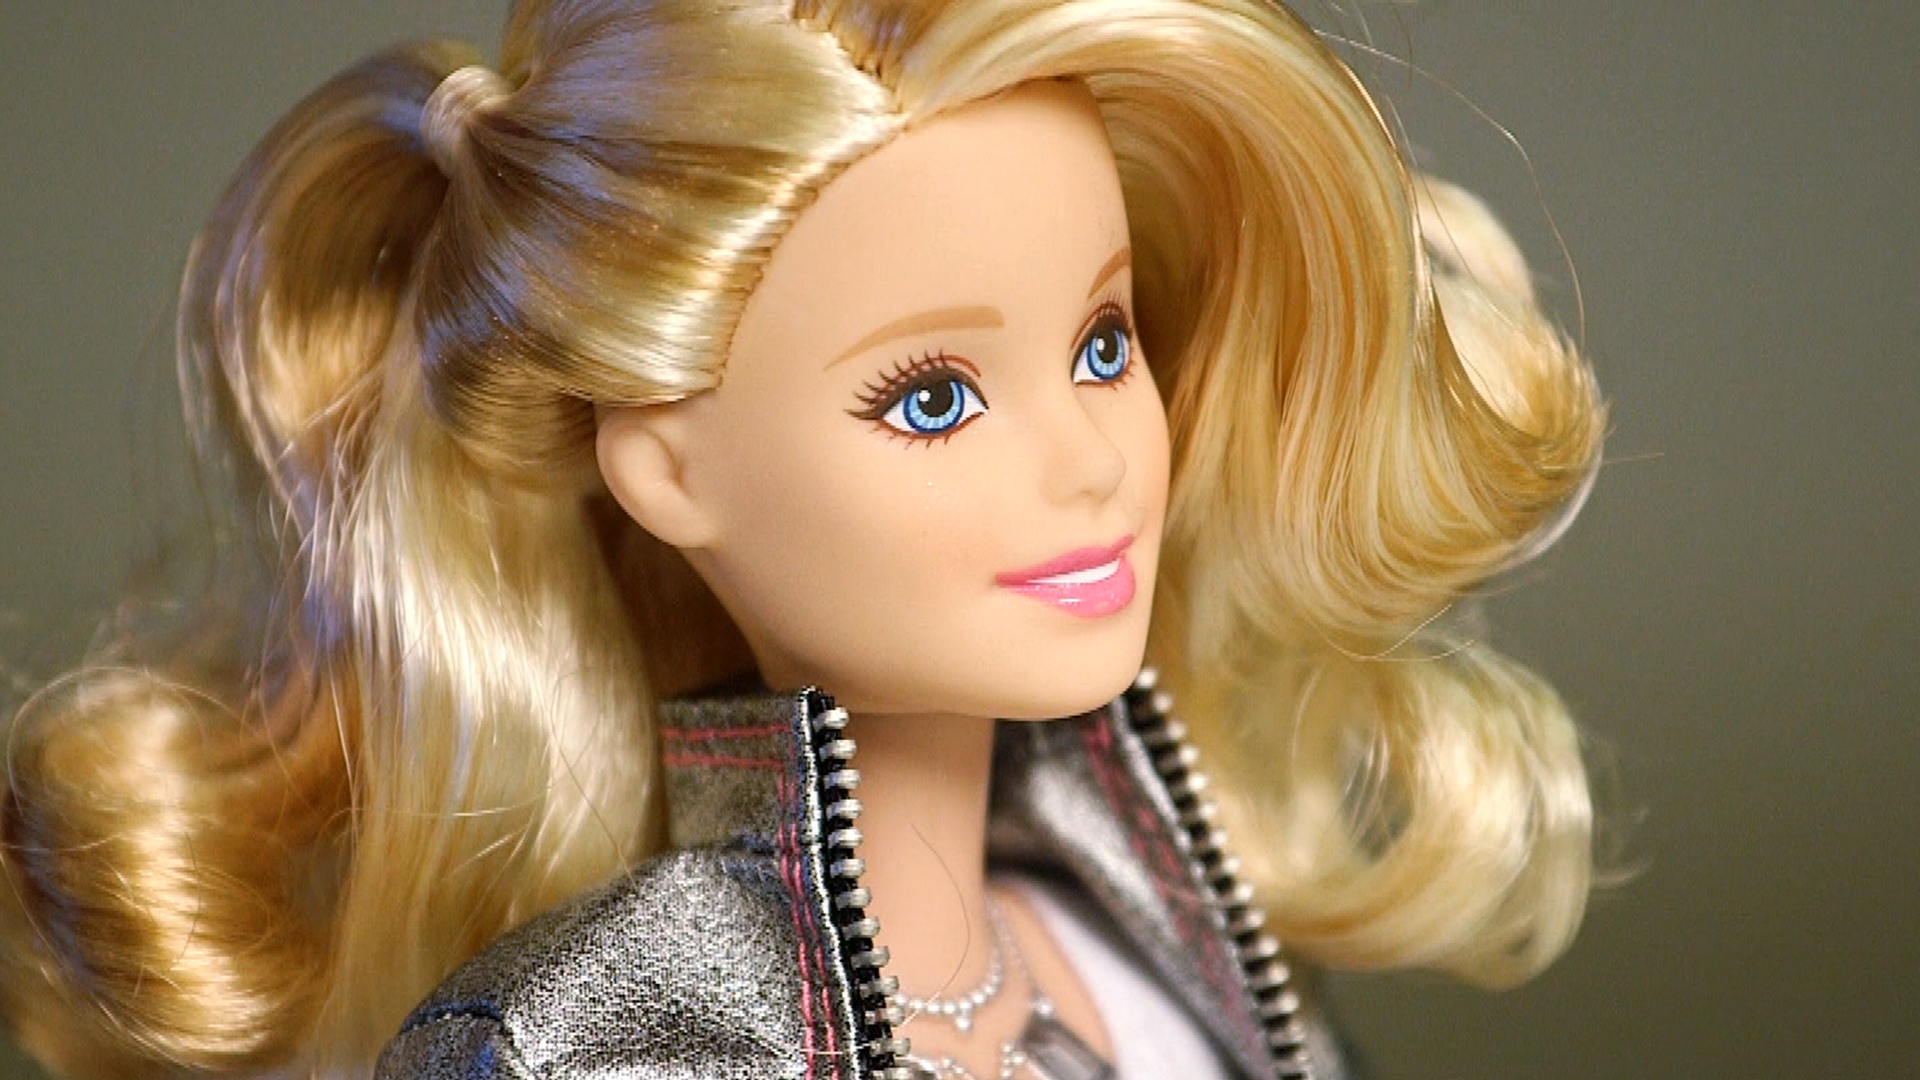 Cool or creepy? High-tech 'Hello Barbie' has conversations ...